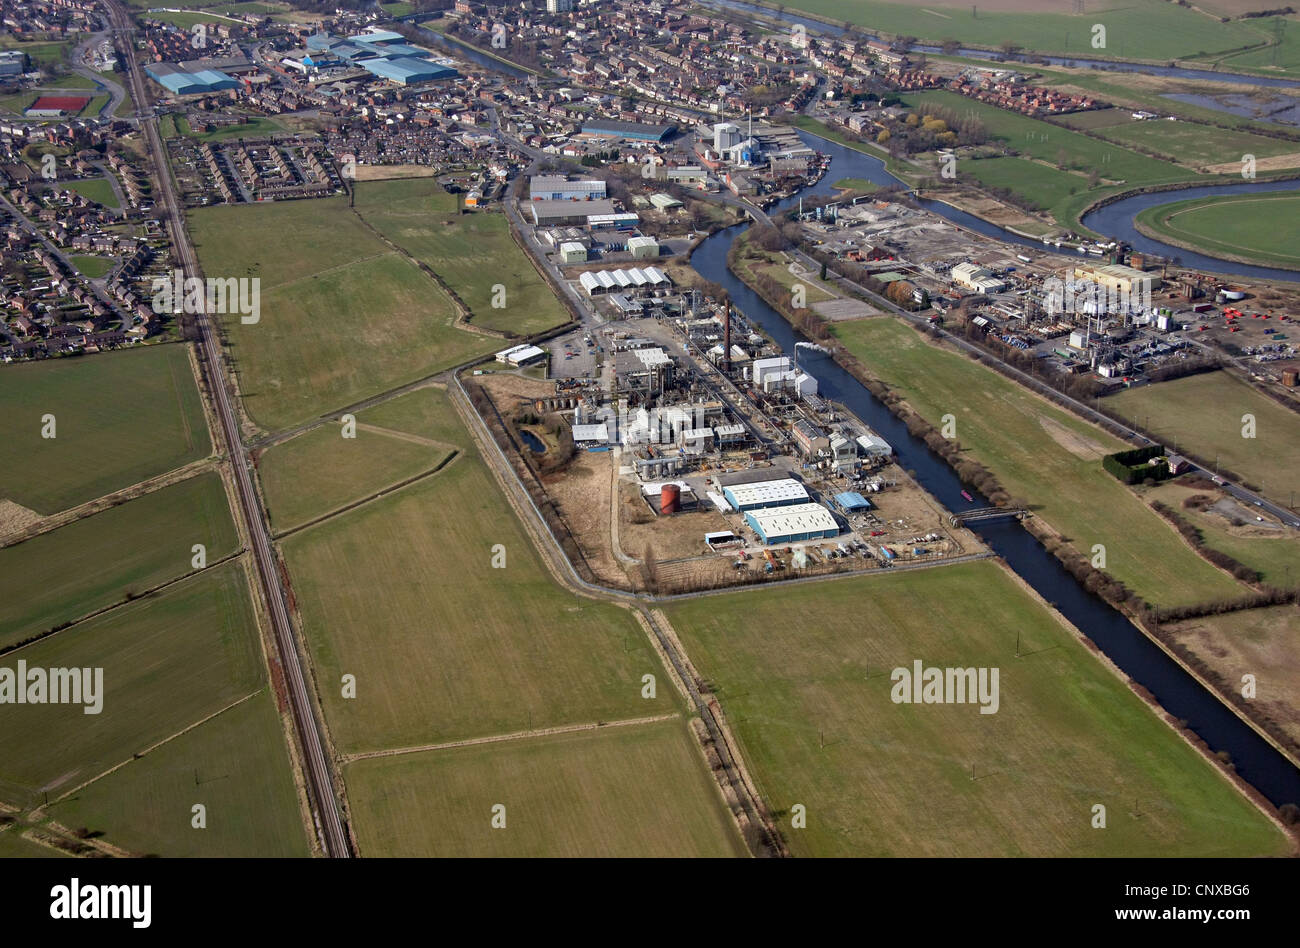 aerial view of a chemical works at Common Lane, Knottingley, West Yorkshire - Stock Image